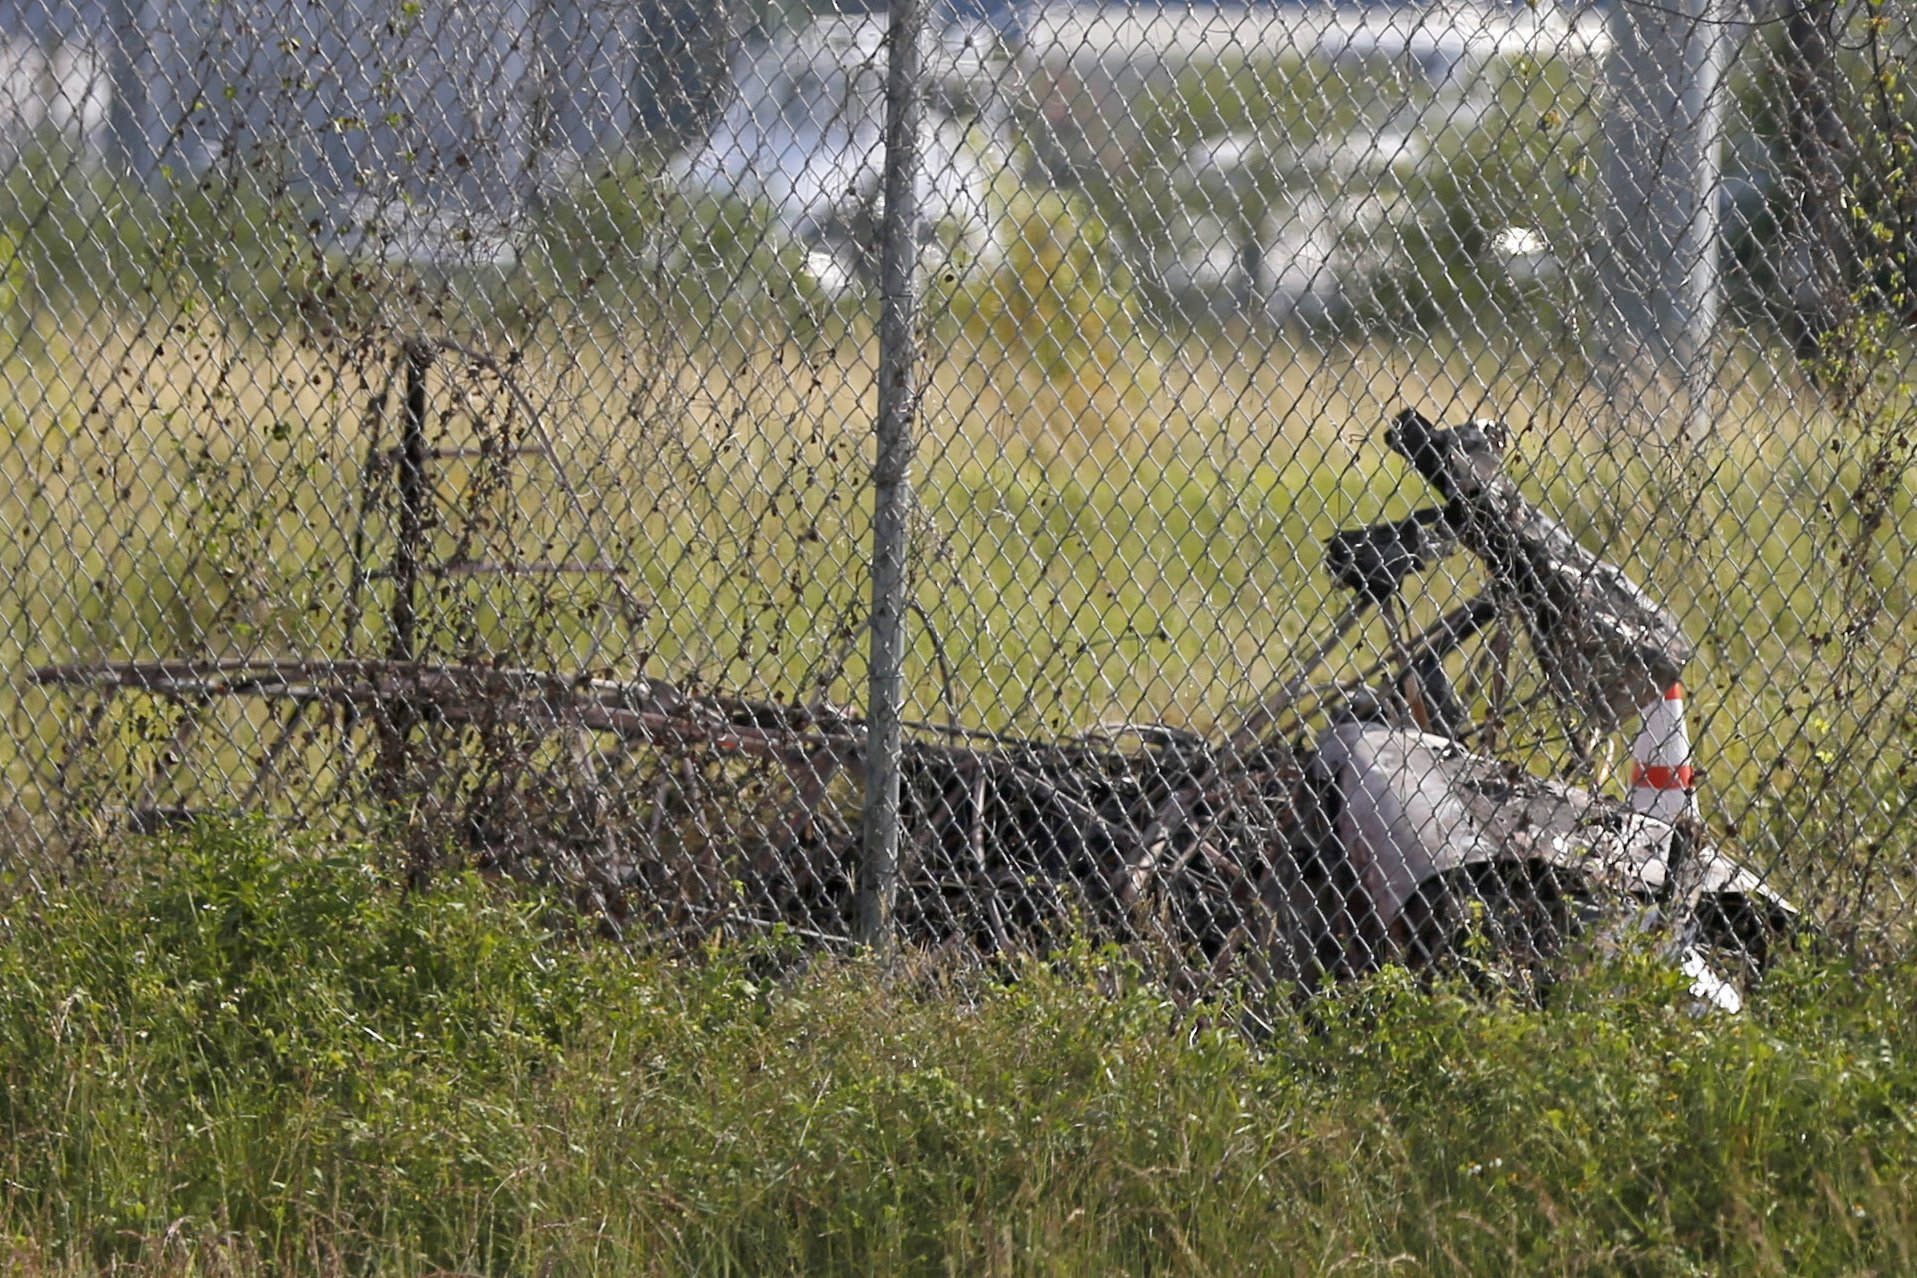 New Orleans: Pilot told tower of problems before plane crash